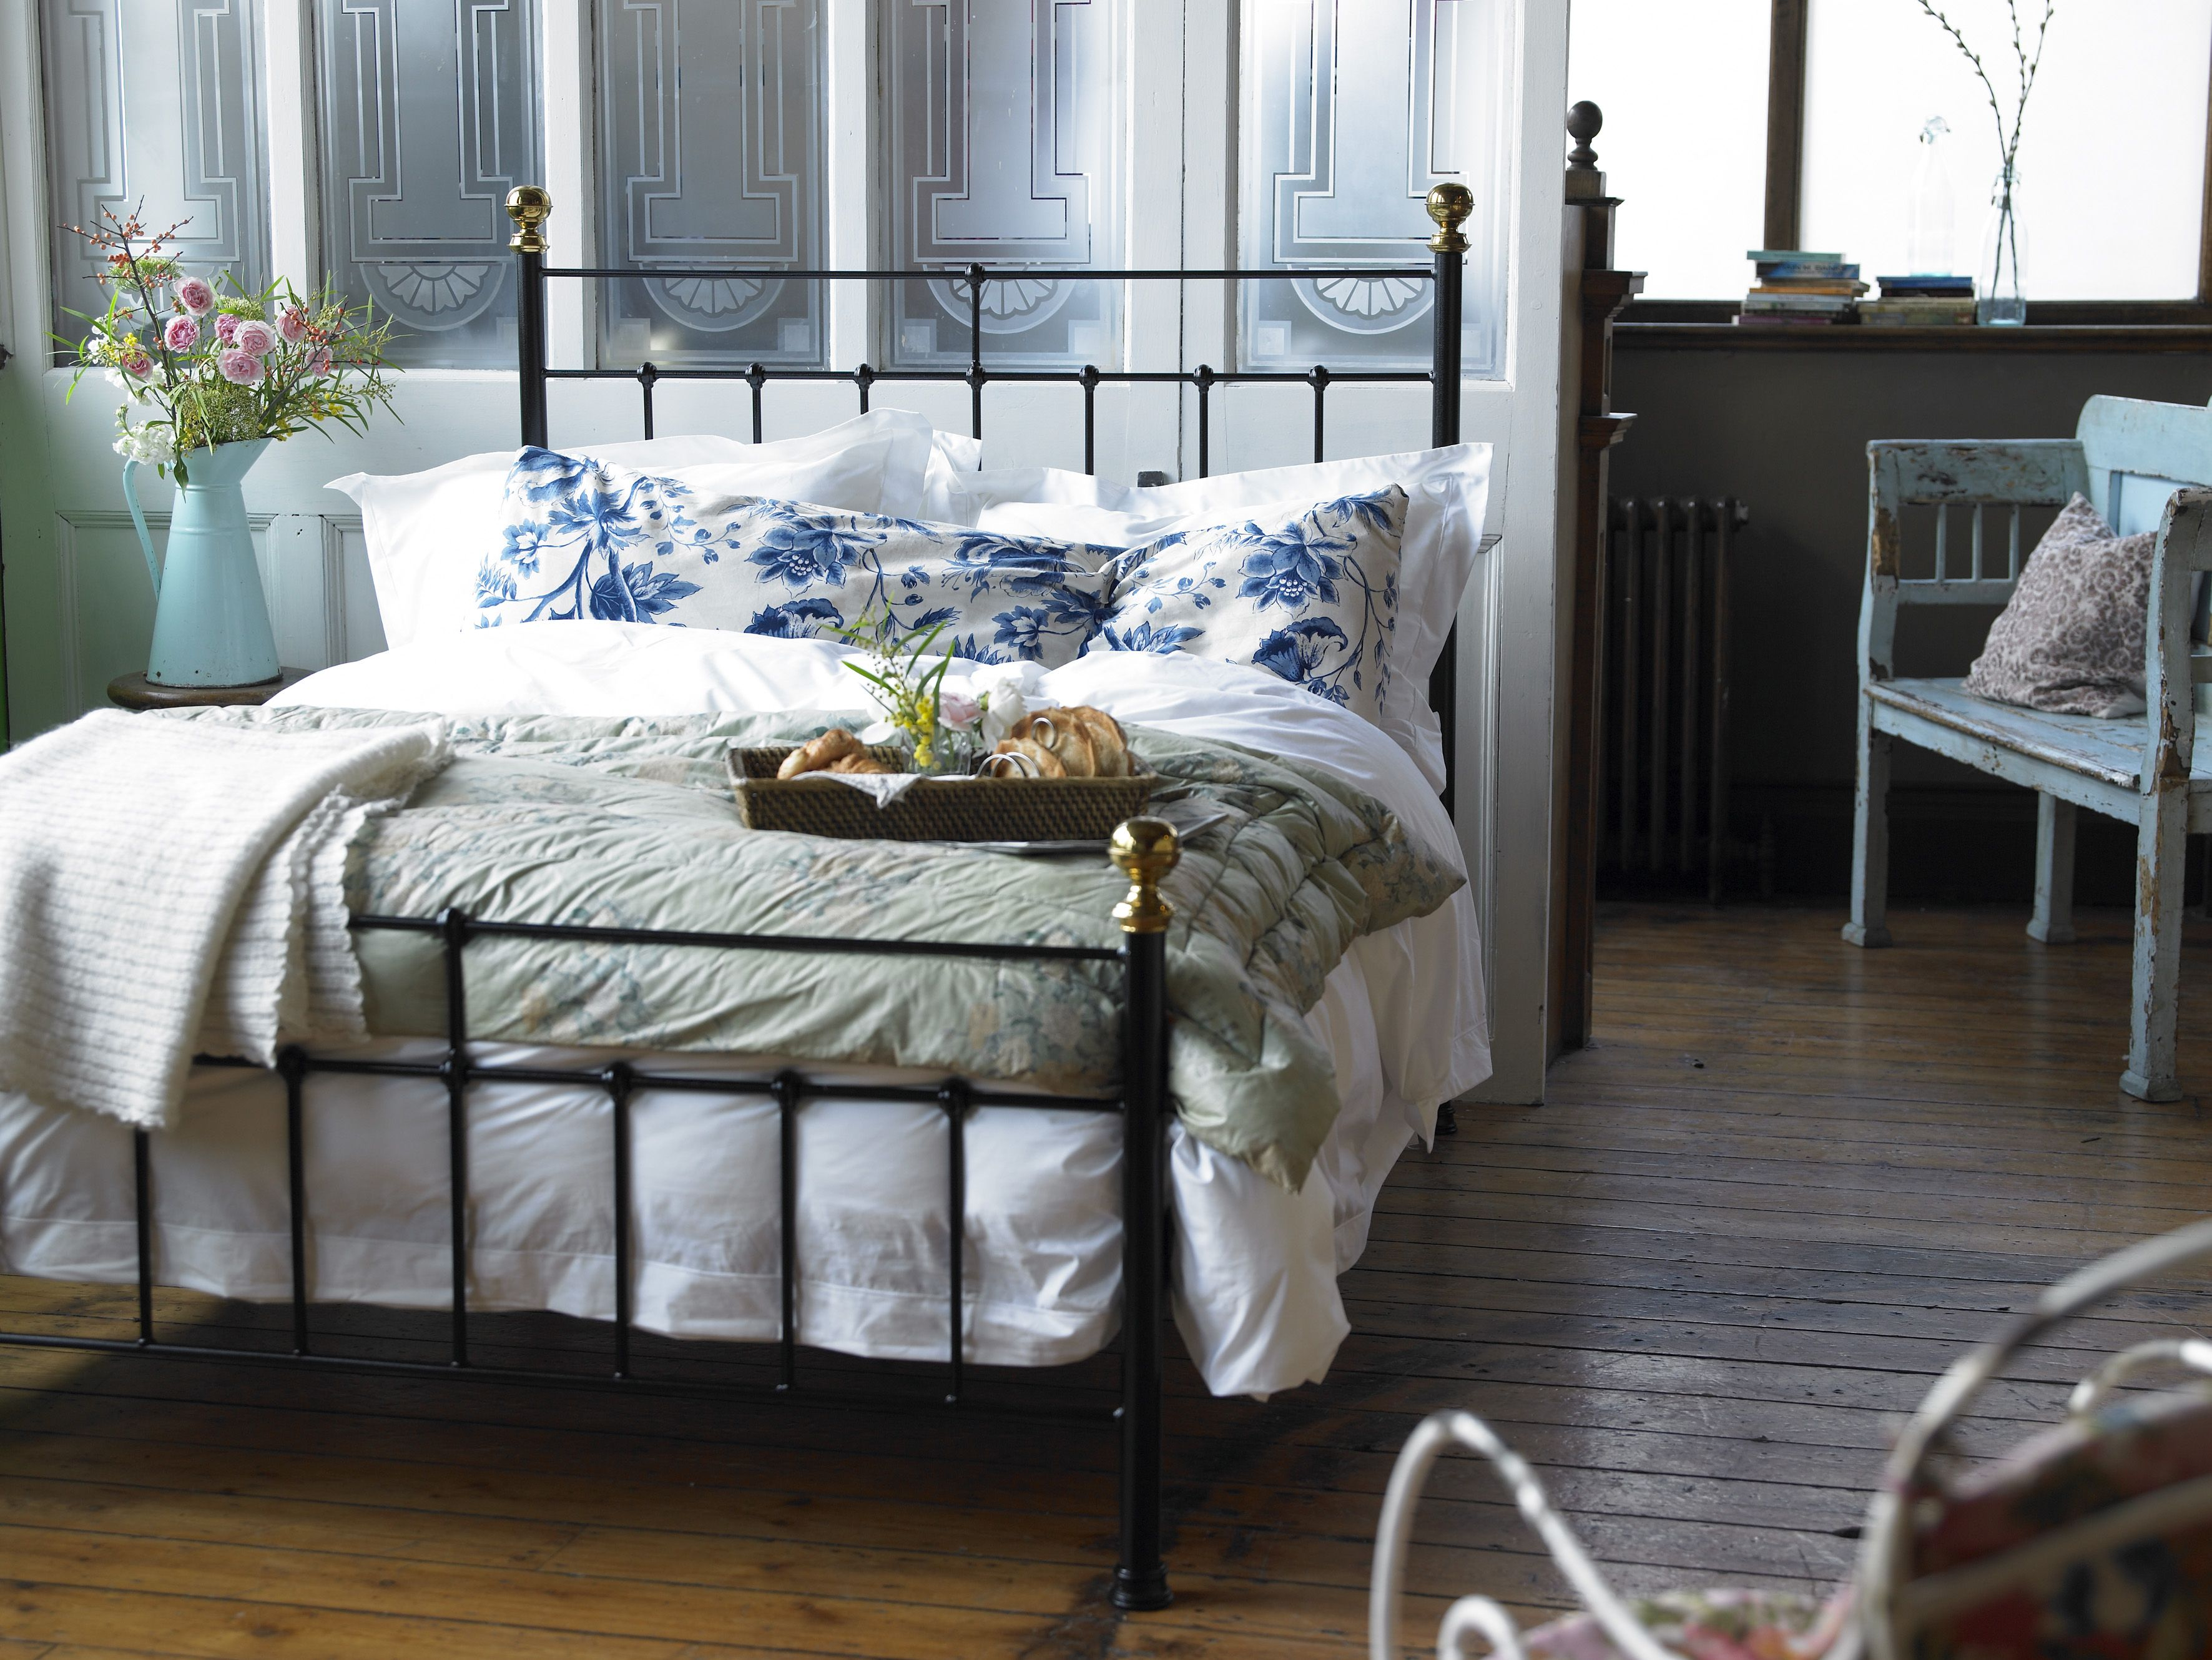 Pin By Kathleen McNally On Bedrooms I Love!